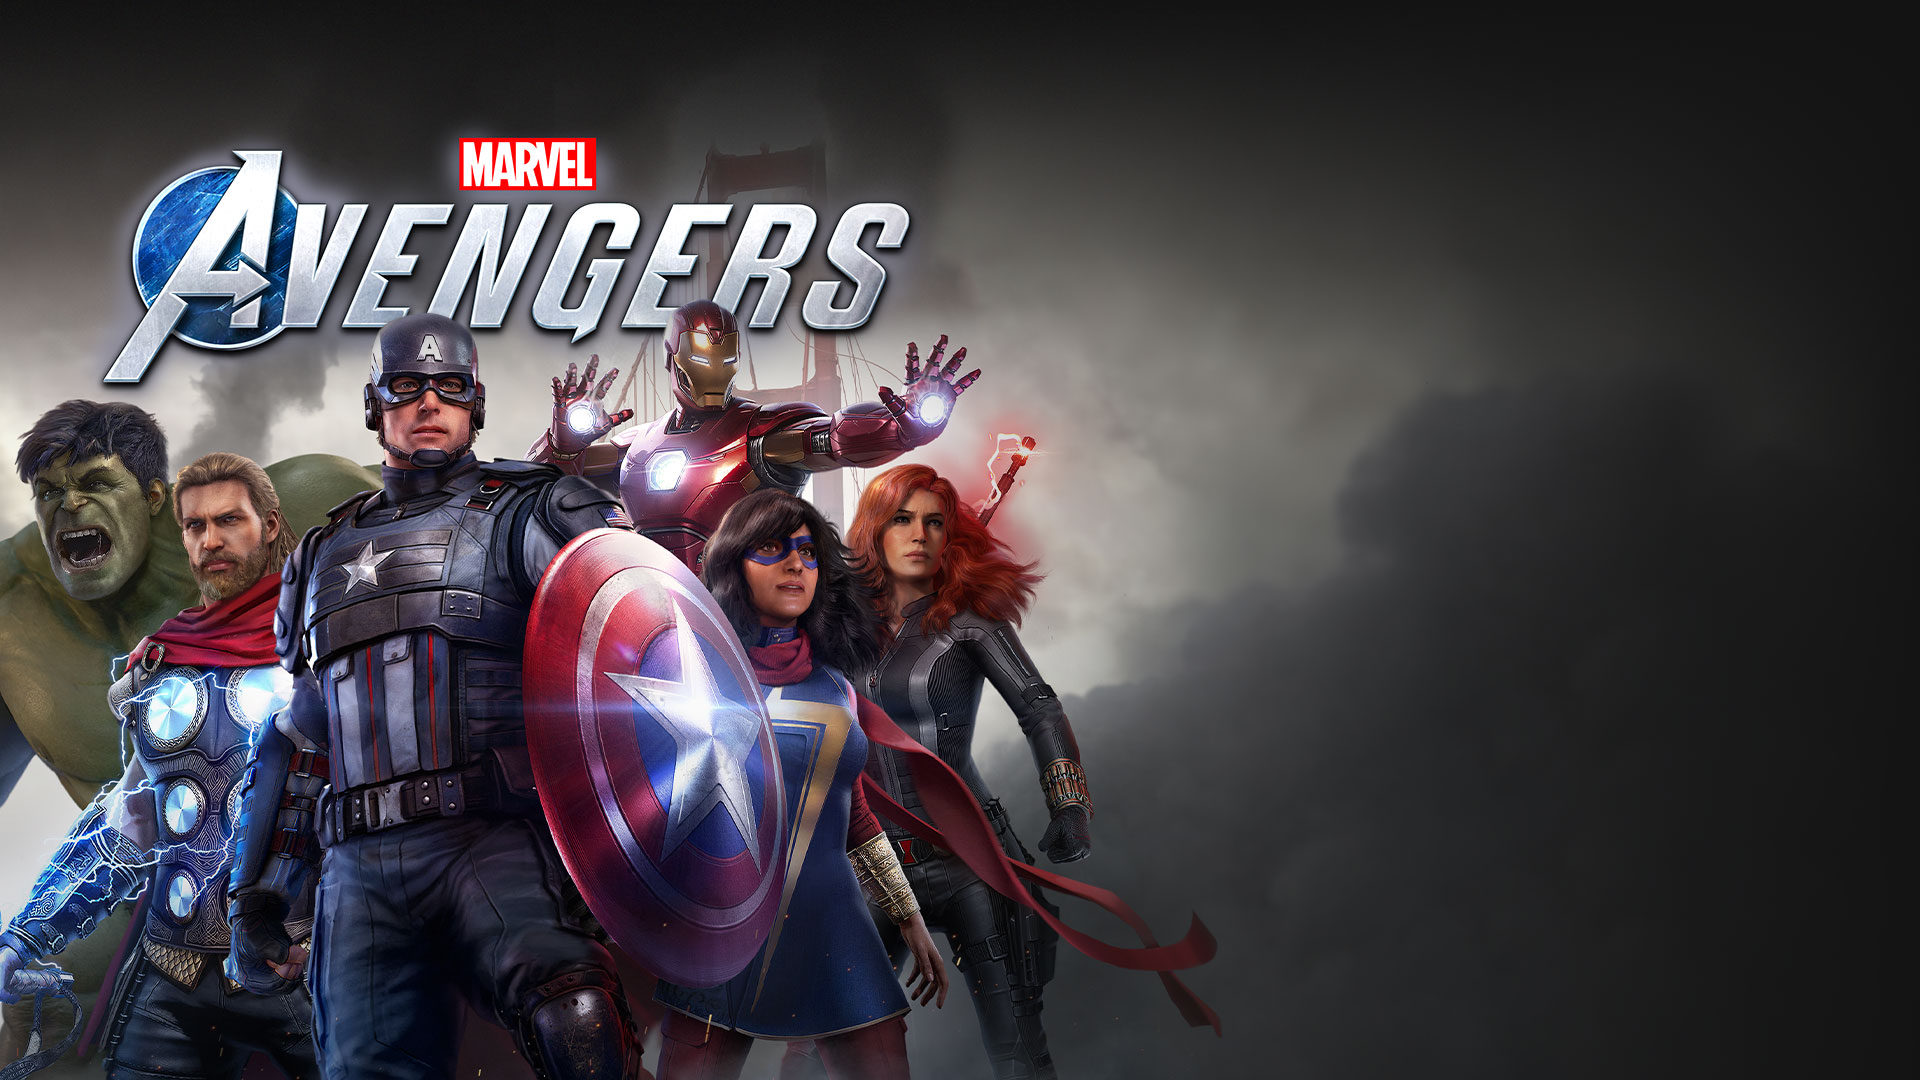 Marvel Avengers logo, Hulk, Thor, Captain America, Ms Marvel, Iron man and Black Widow posing in front of the Golden Gate Bridge during a storm